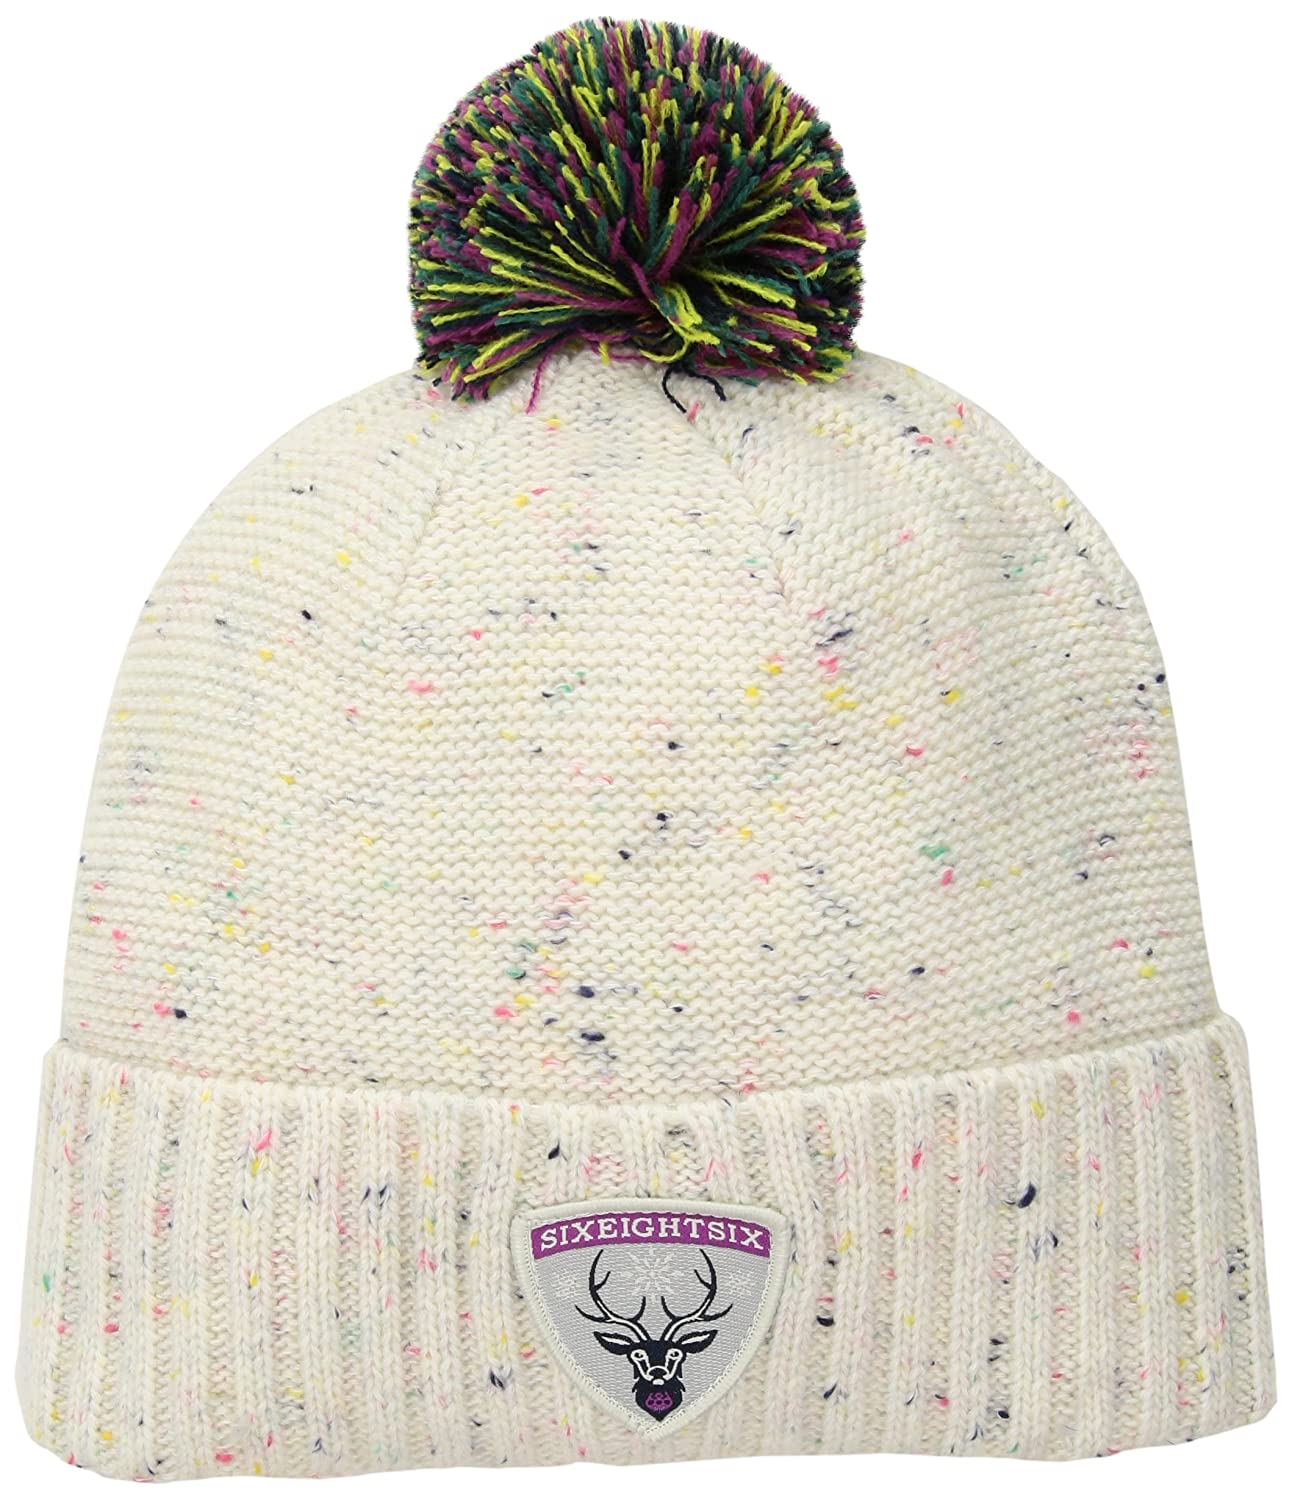 ae892aacda9 Amazon.com  686 Women s Wonderlux Hand Knit Beanie  Sports   Outdoors